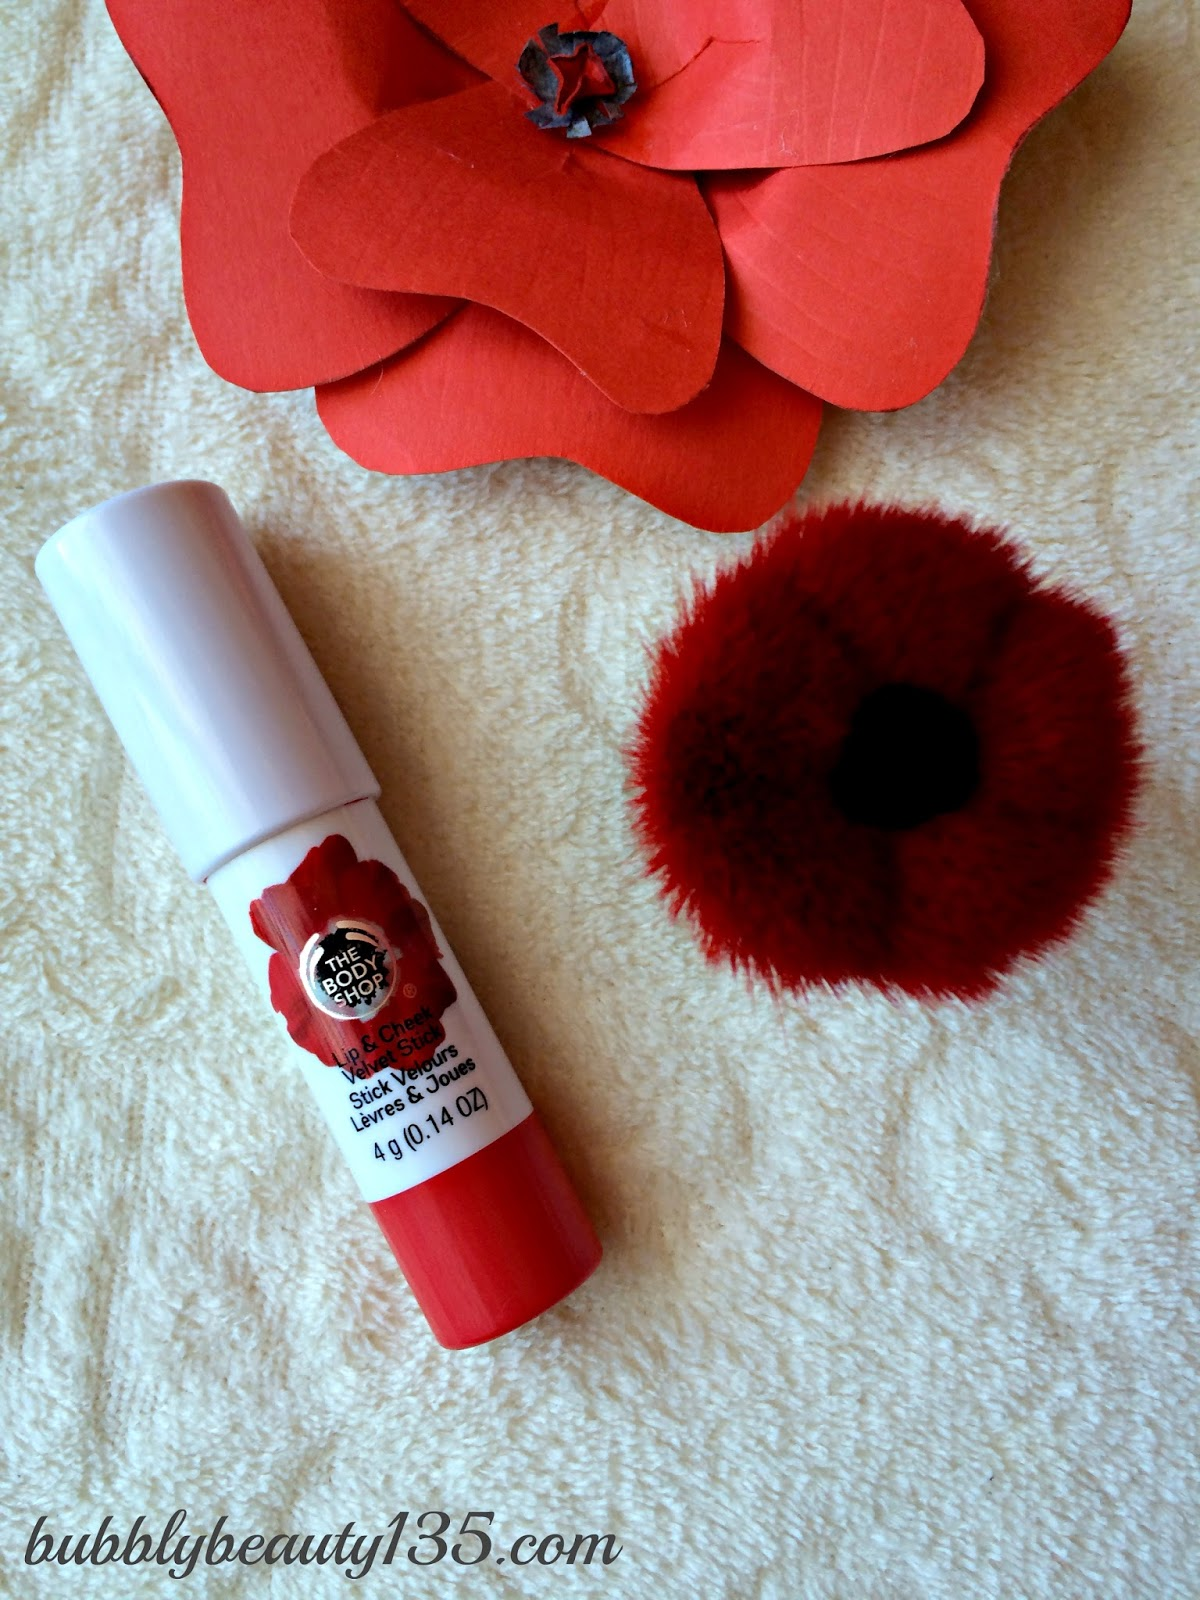 The Body Shop | Smoky Poppy Collection | www.bubblybeauty135.com